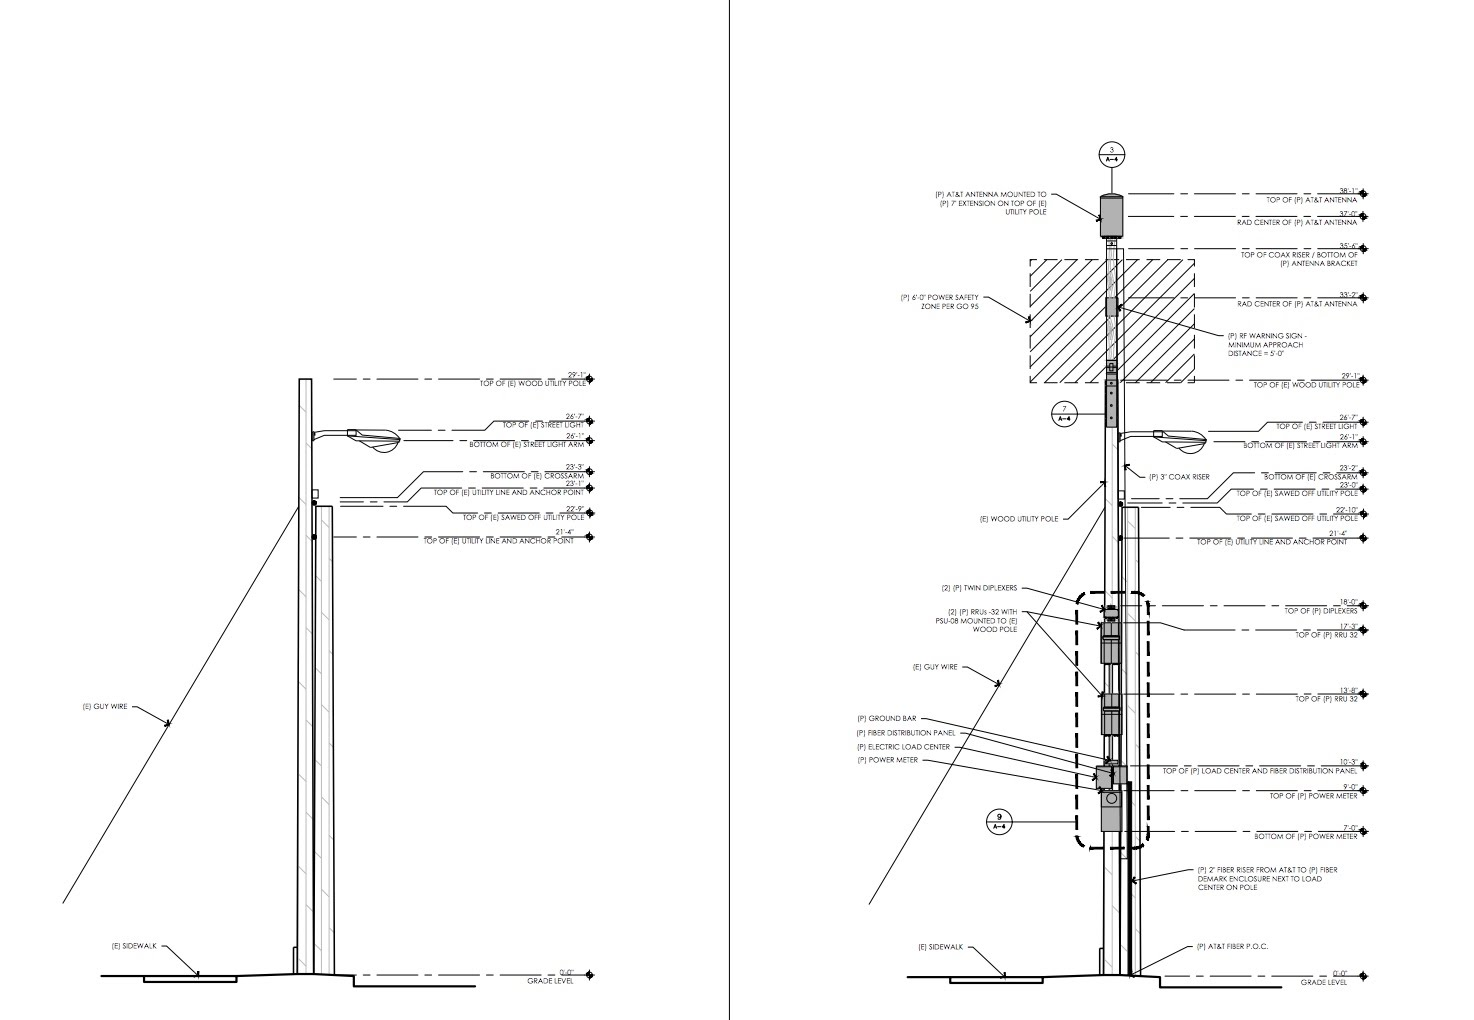 hight resolution of  left image is original light pole right image is light pole w extension electronic boxes added example of 2018 proposed cell tower